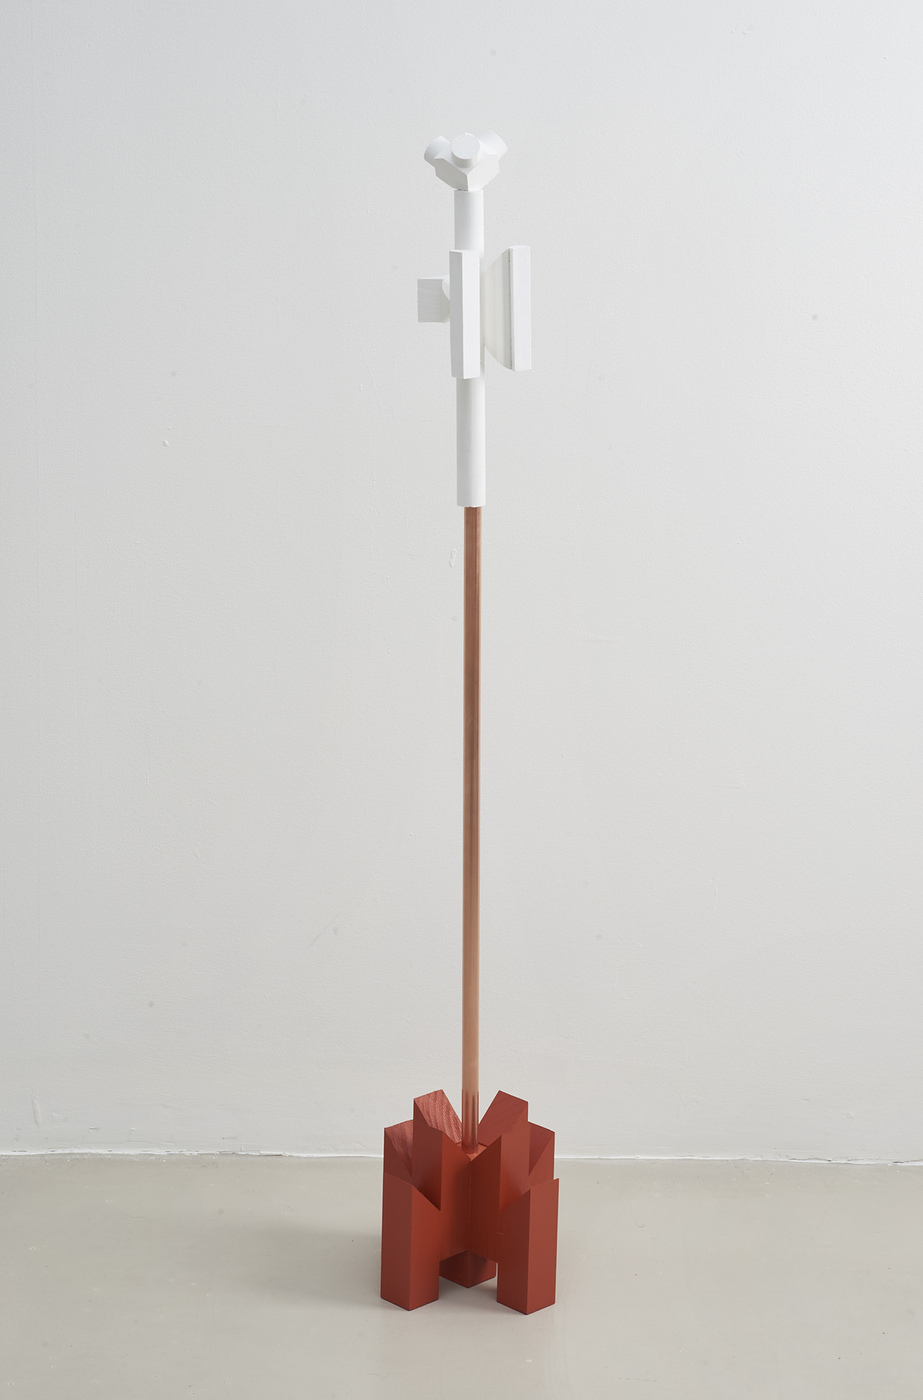 Sutter-Shudo_Pole for the Crib of the Infant Jesus, 2016_43 x 7.5x7.5 inches_NSS00004ST_PRS (1)